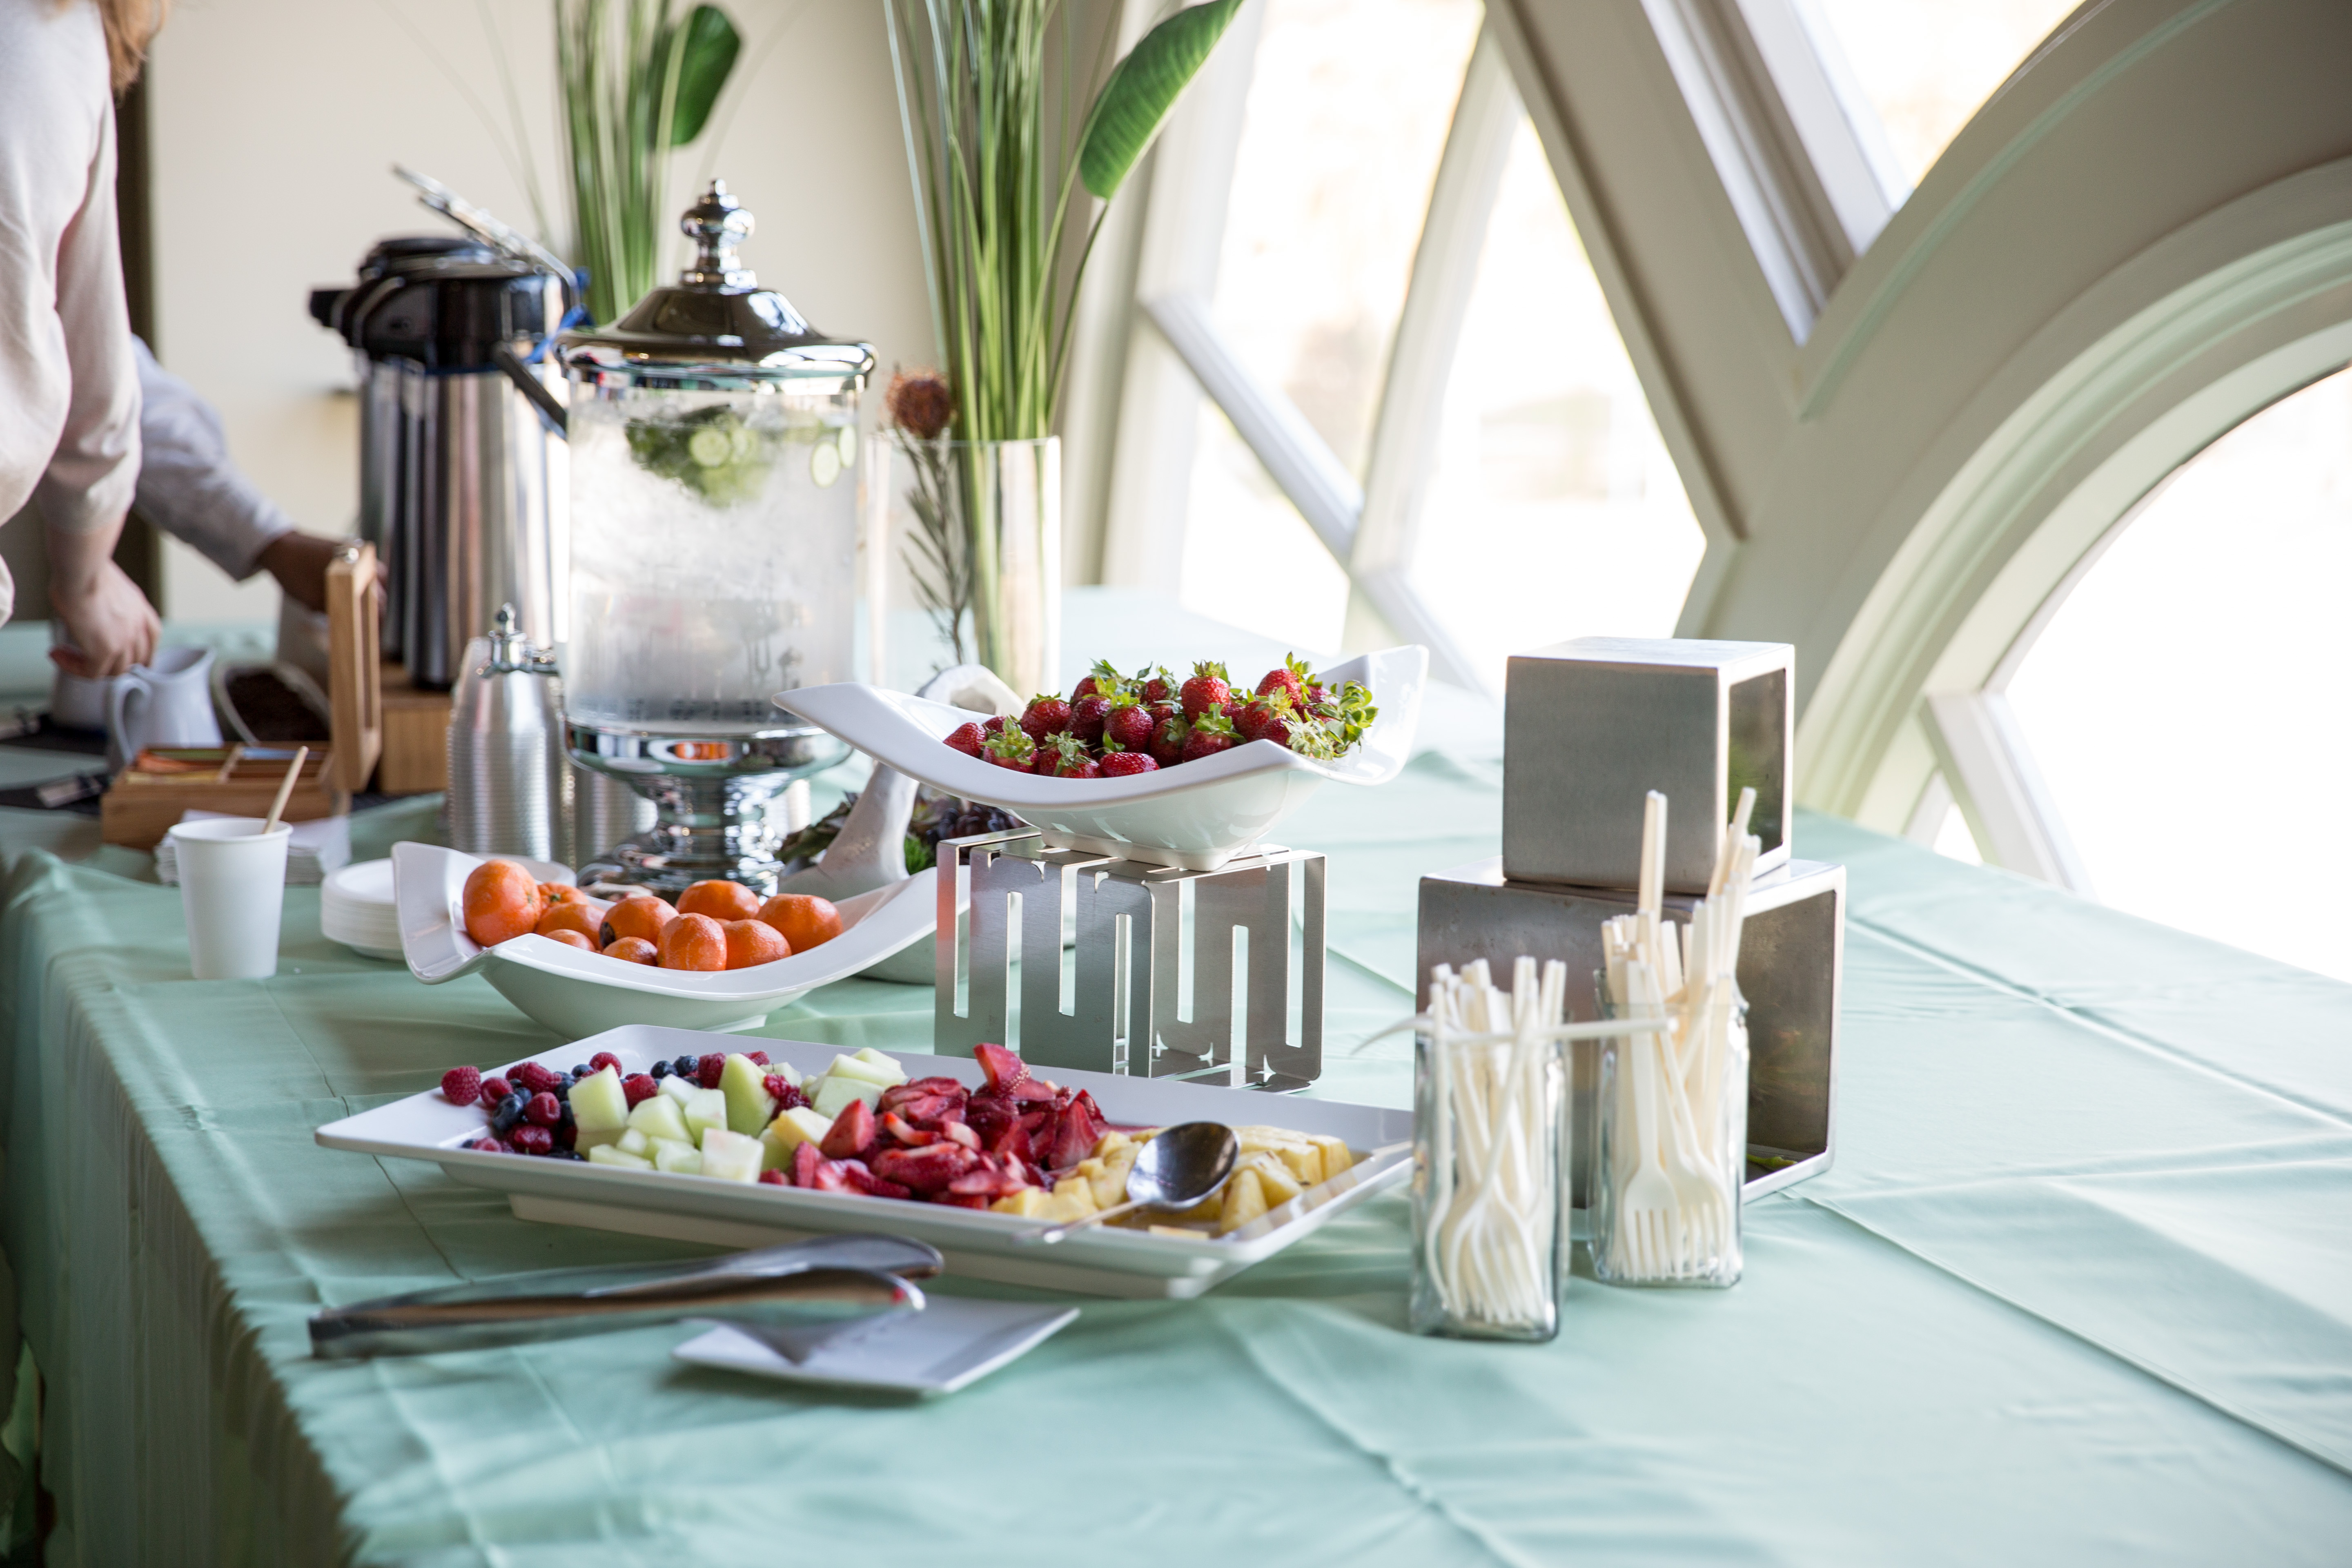 Importance Of Table Setting Food At Work Setting The Table For A Healthy Workforce Huffpost